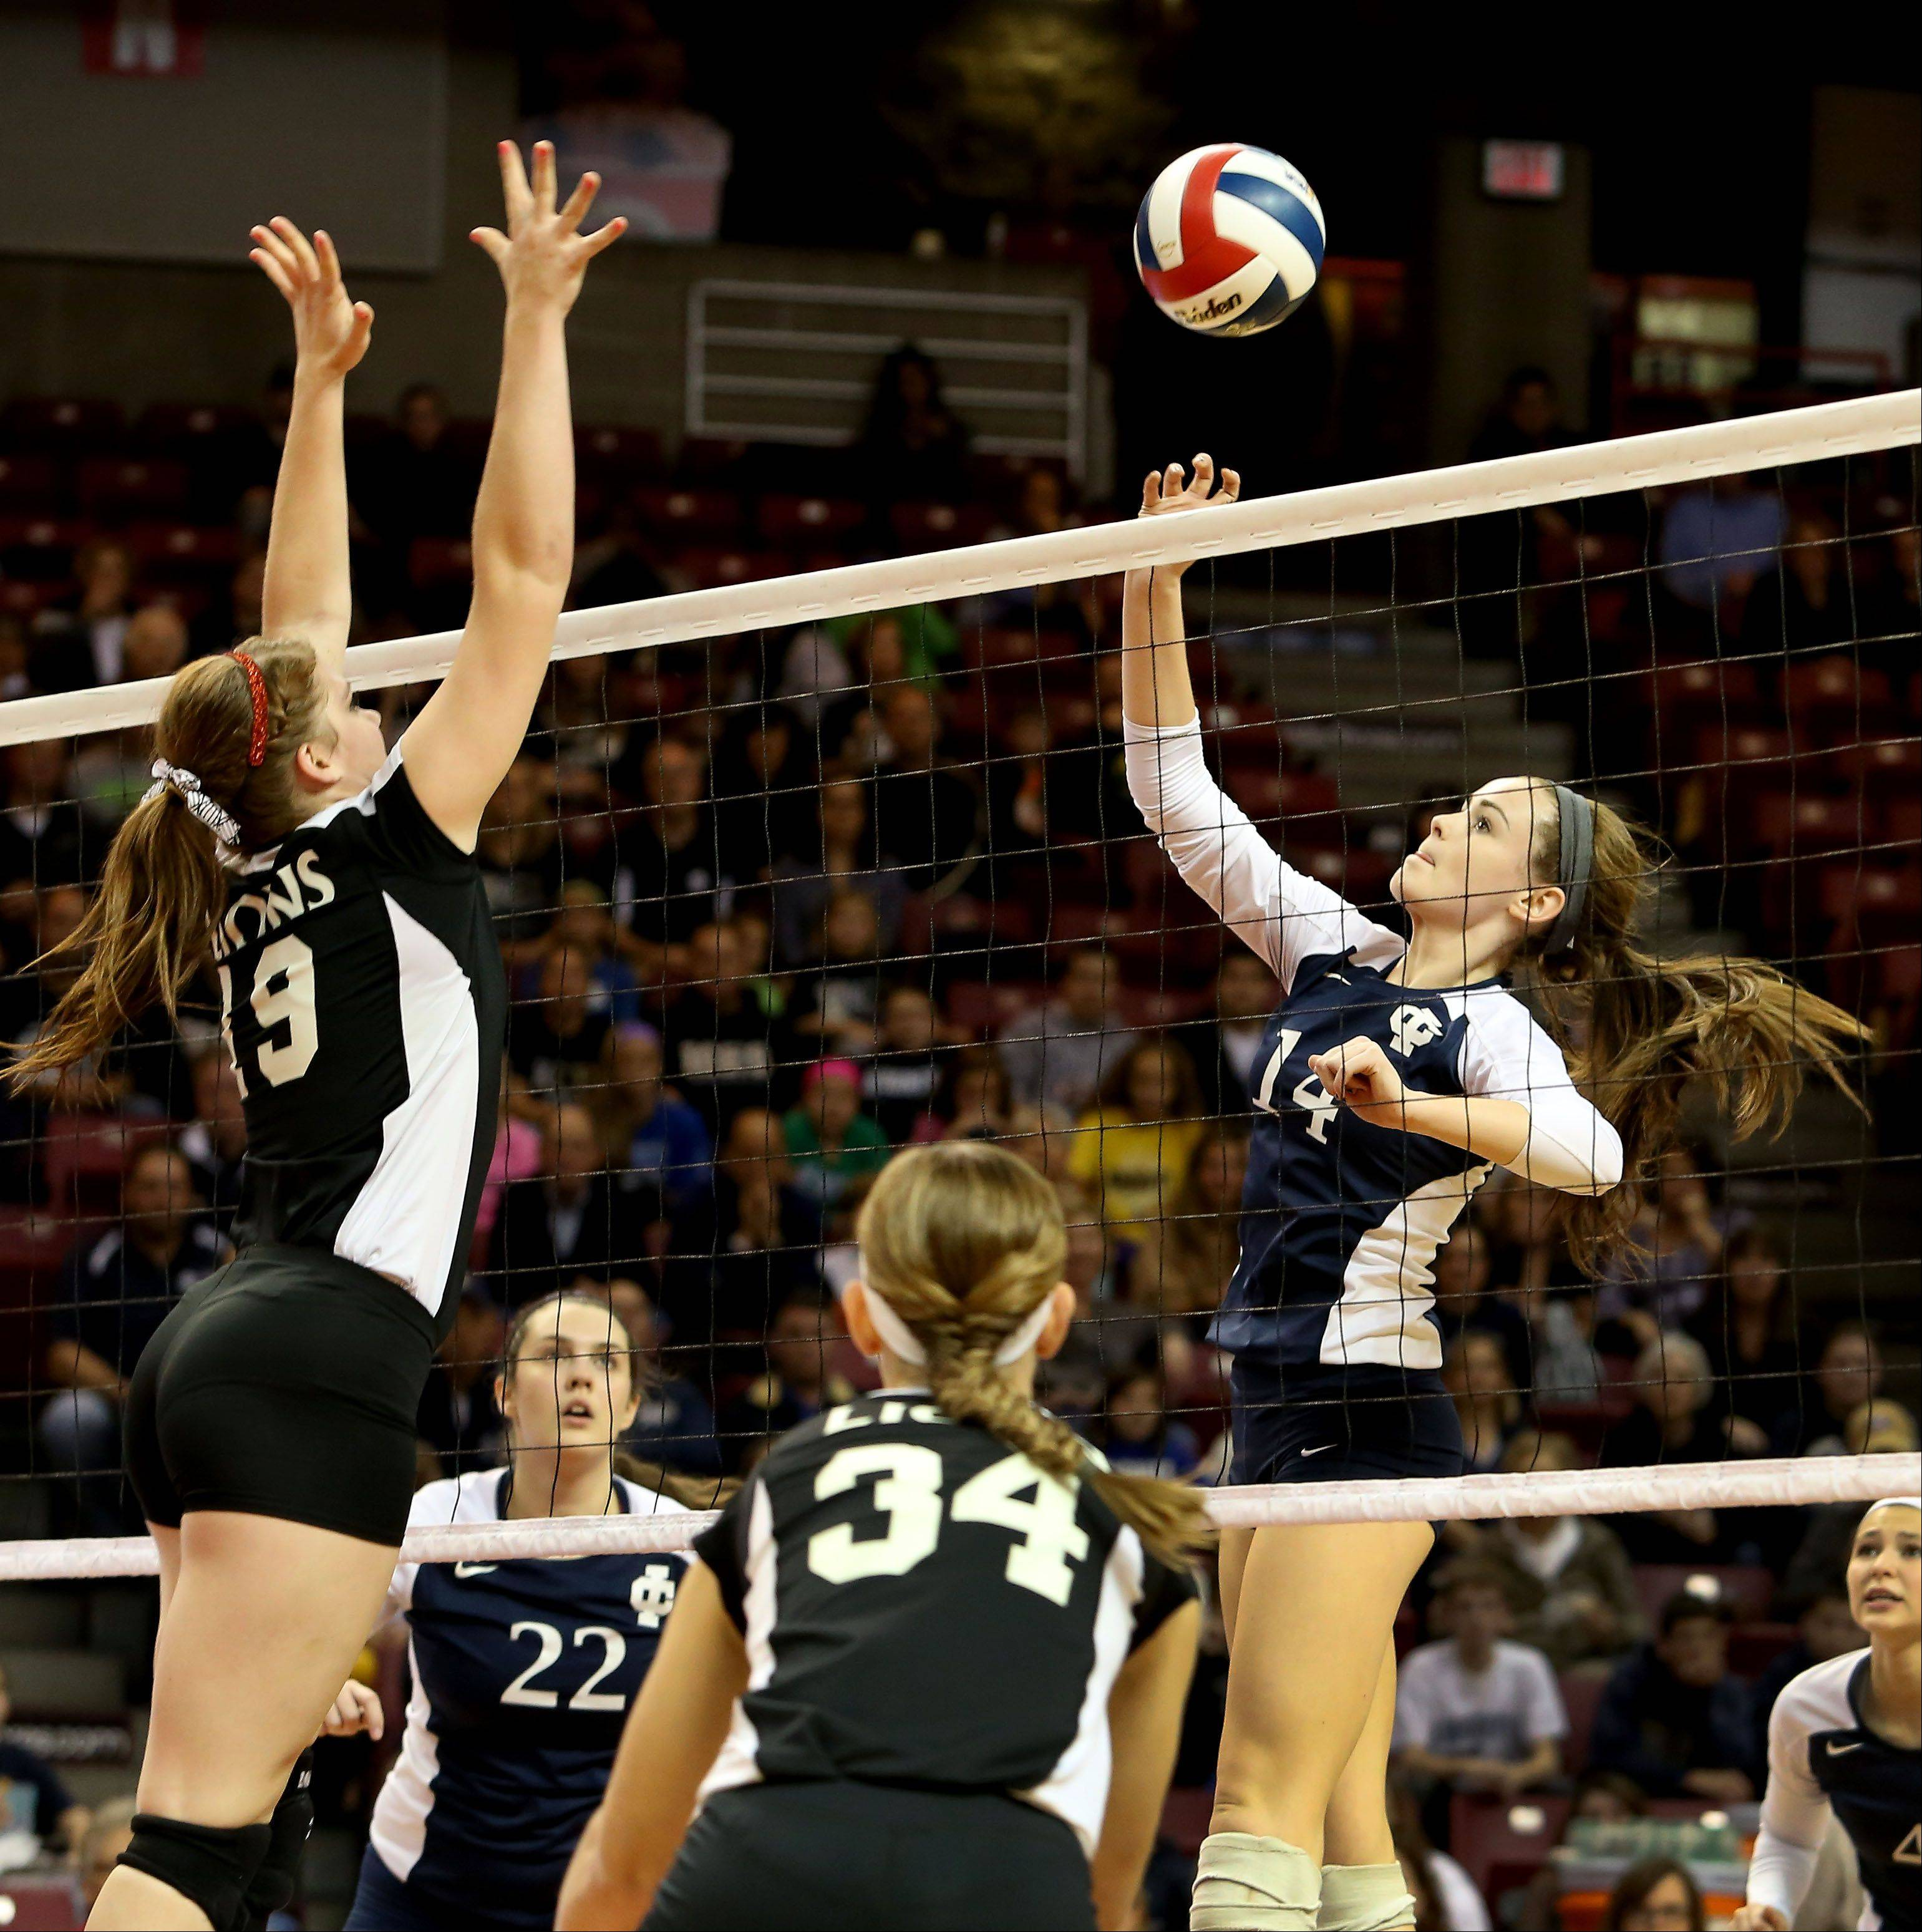 Claudia Koch of IC Catholic, right, in action against Edwards County in the Class 2A championship girls volleyball match on Saturday in Normal.